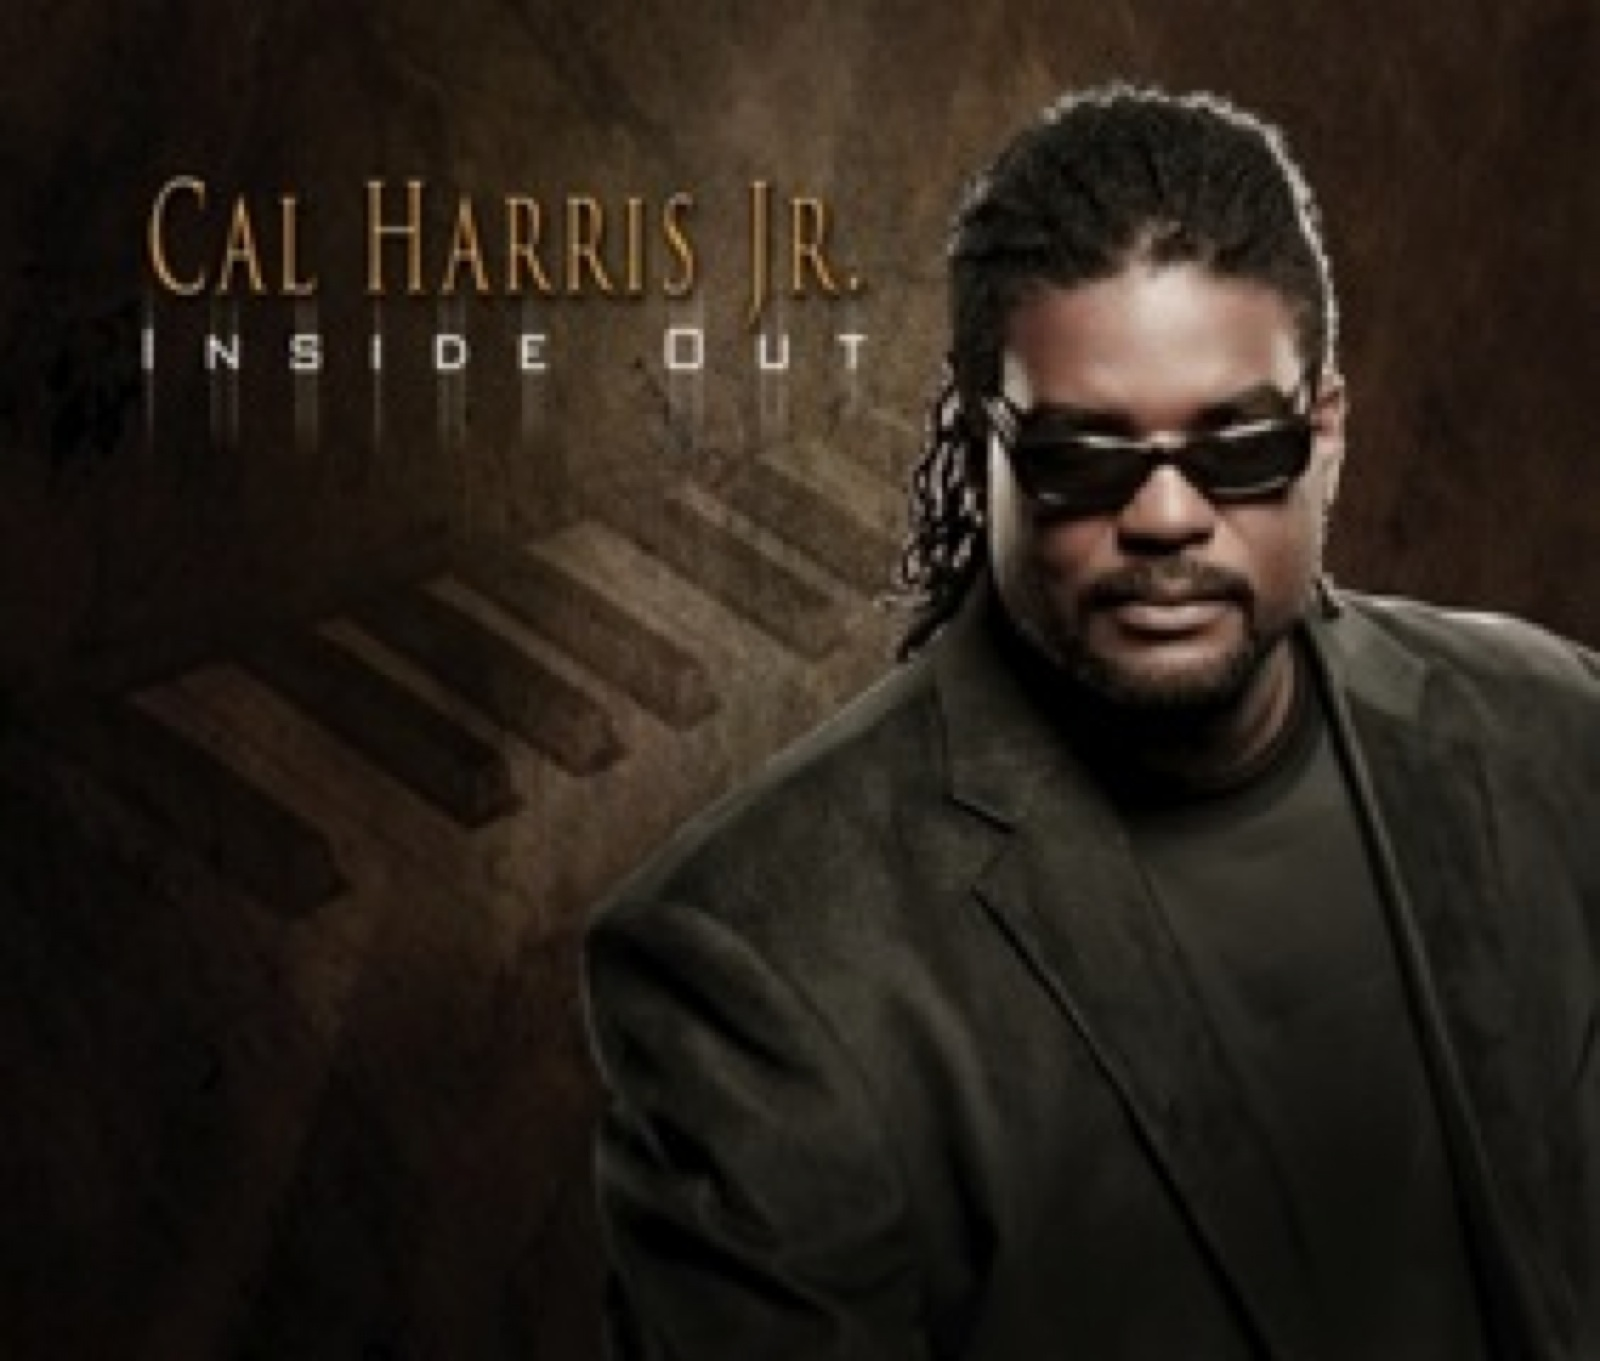 Inside Out by Cal Harris Jr. Debut CD